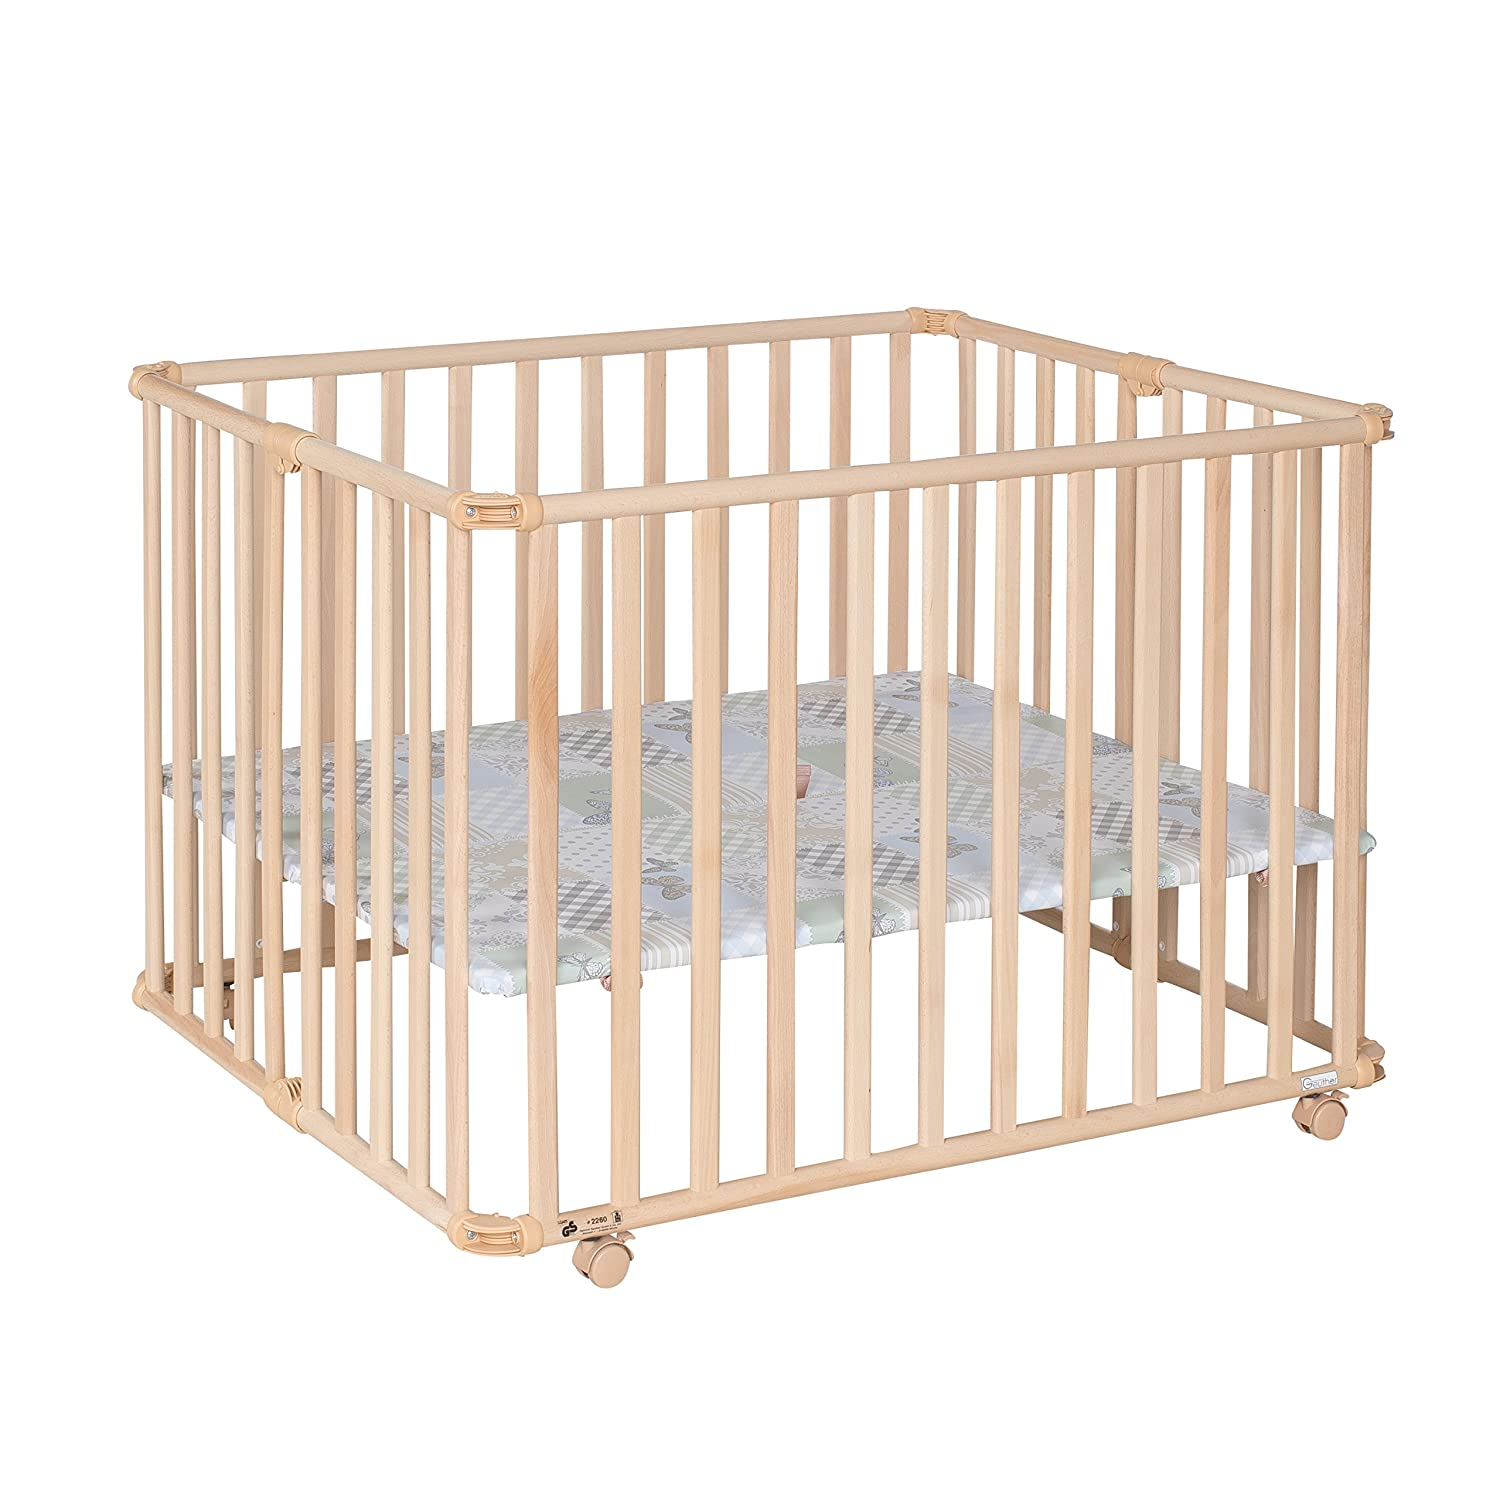 GEUTHER Parc Pliable Ameli Papillon Naturel GEUR3 2260 04 NA